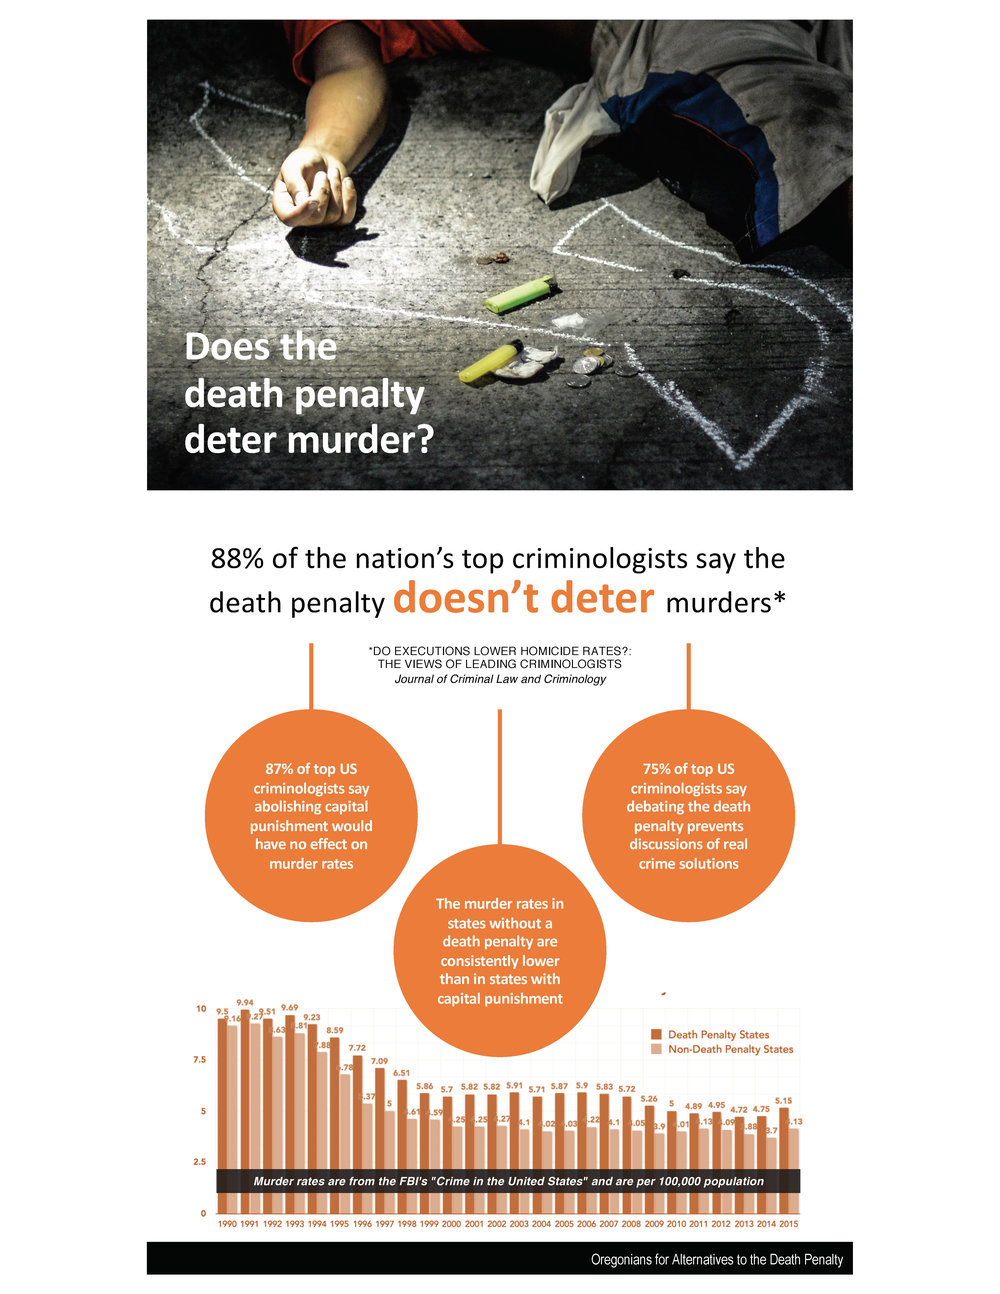 Infographics are a perfect example of simplicity and creativity working in tandem. The first infographic shows the effect of three pieces of legislation on a wine bottle label. The second debunks the idea that the death penalty is a deterrent to murder. Both convey a lot of information in a small amount of visual real estate, leaving no doubt about their key messages.